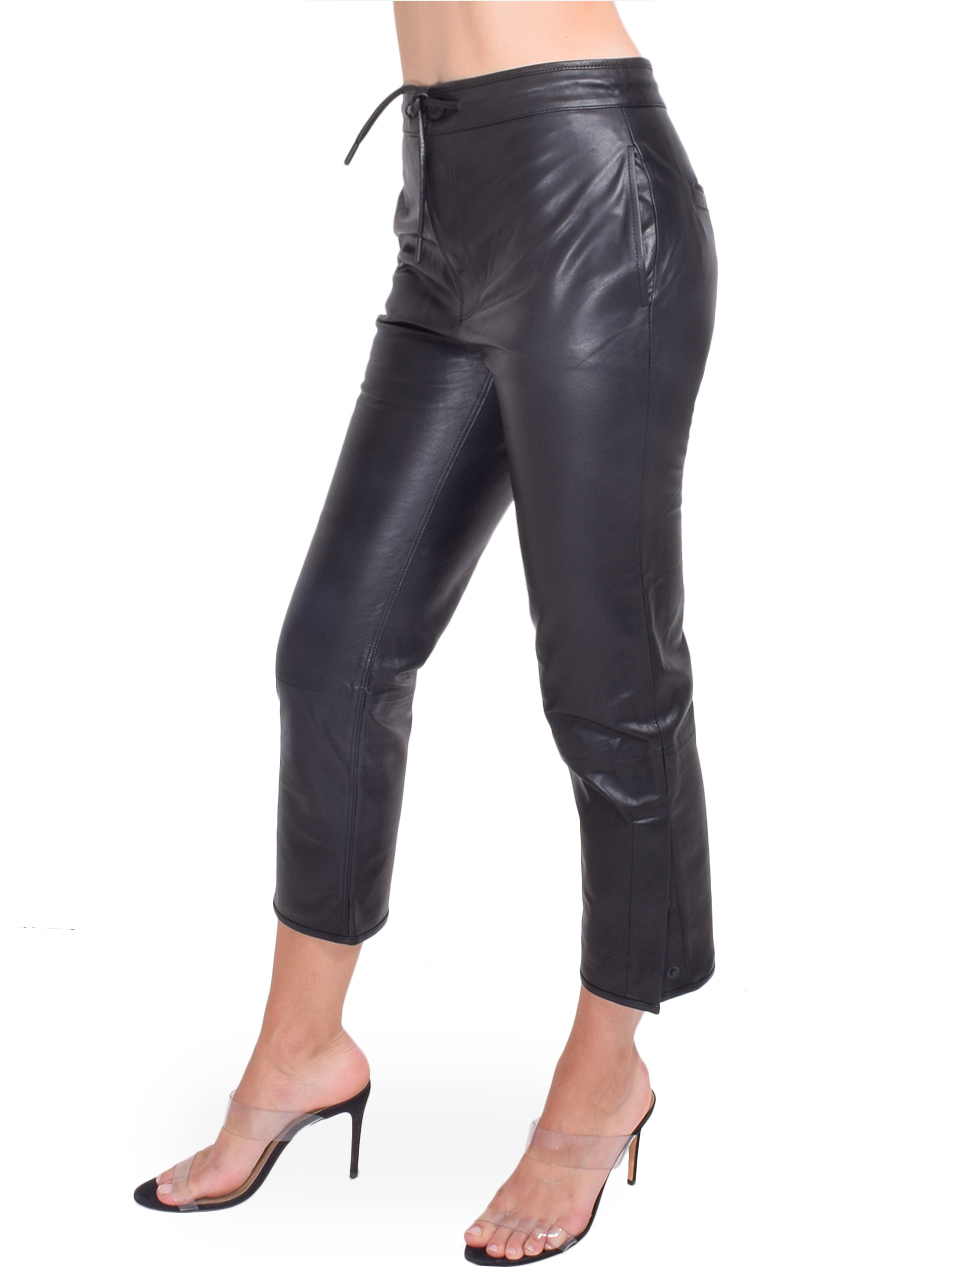 RtA Matisse Pants in Black Leather Side View